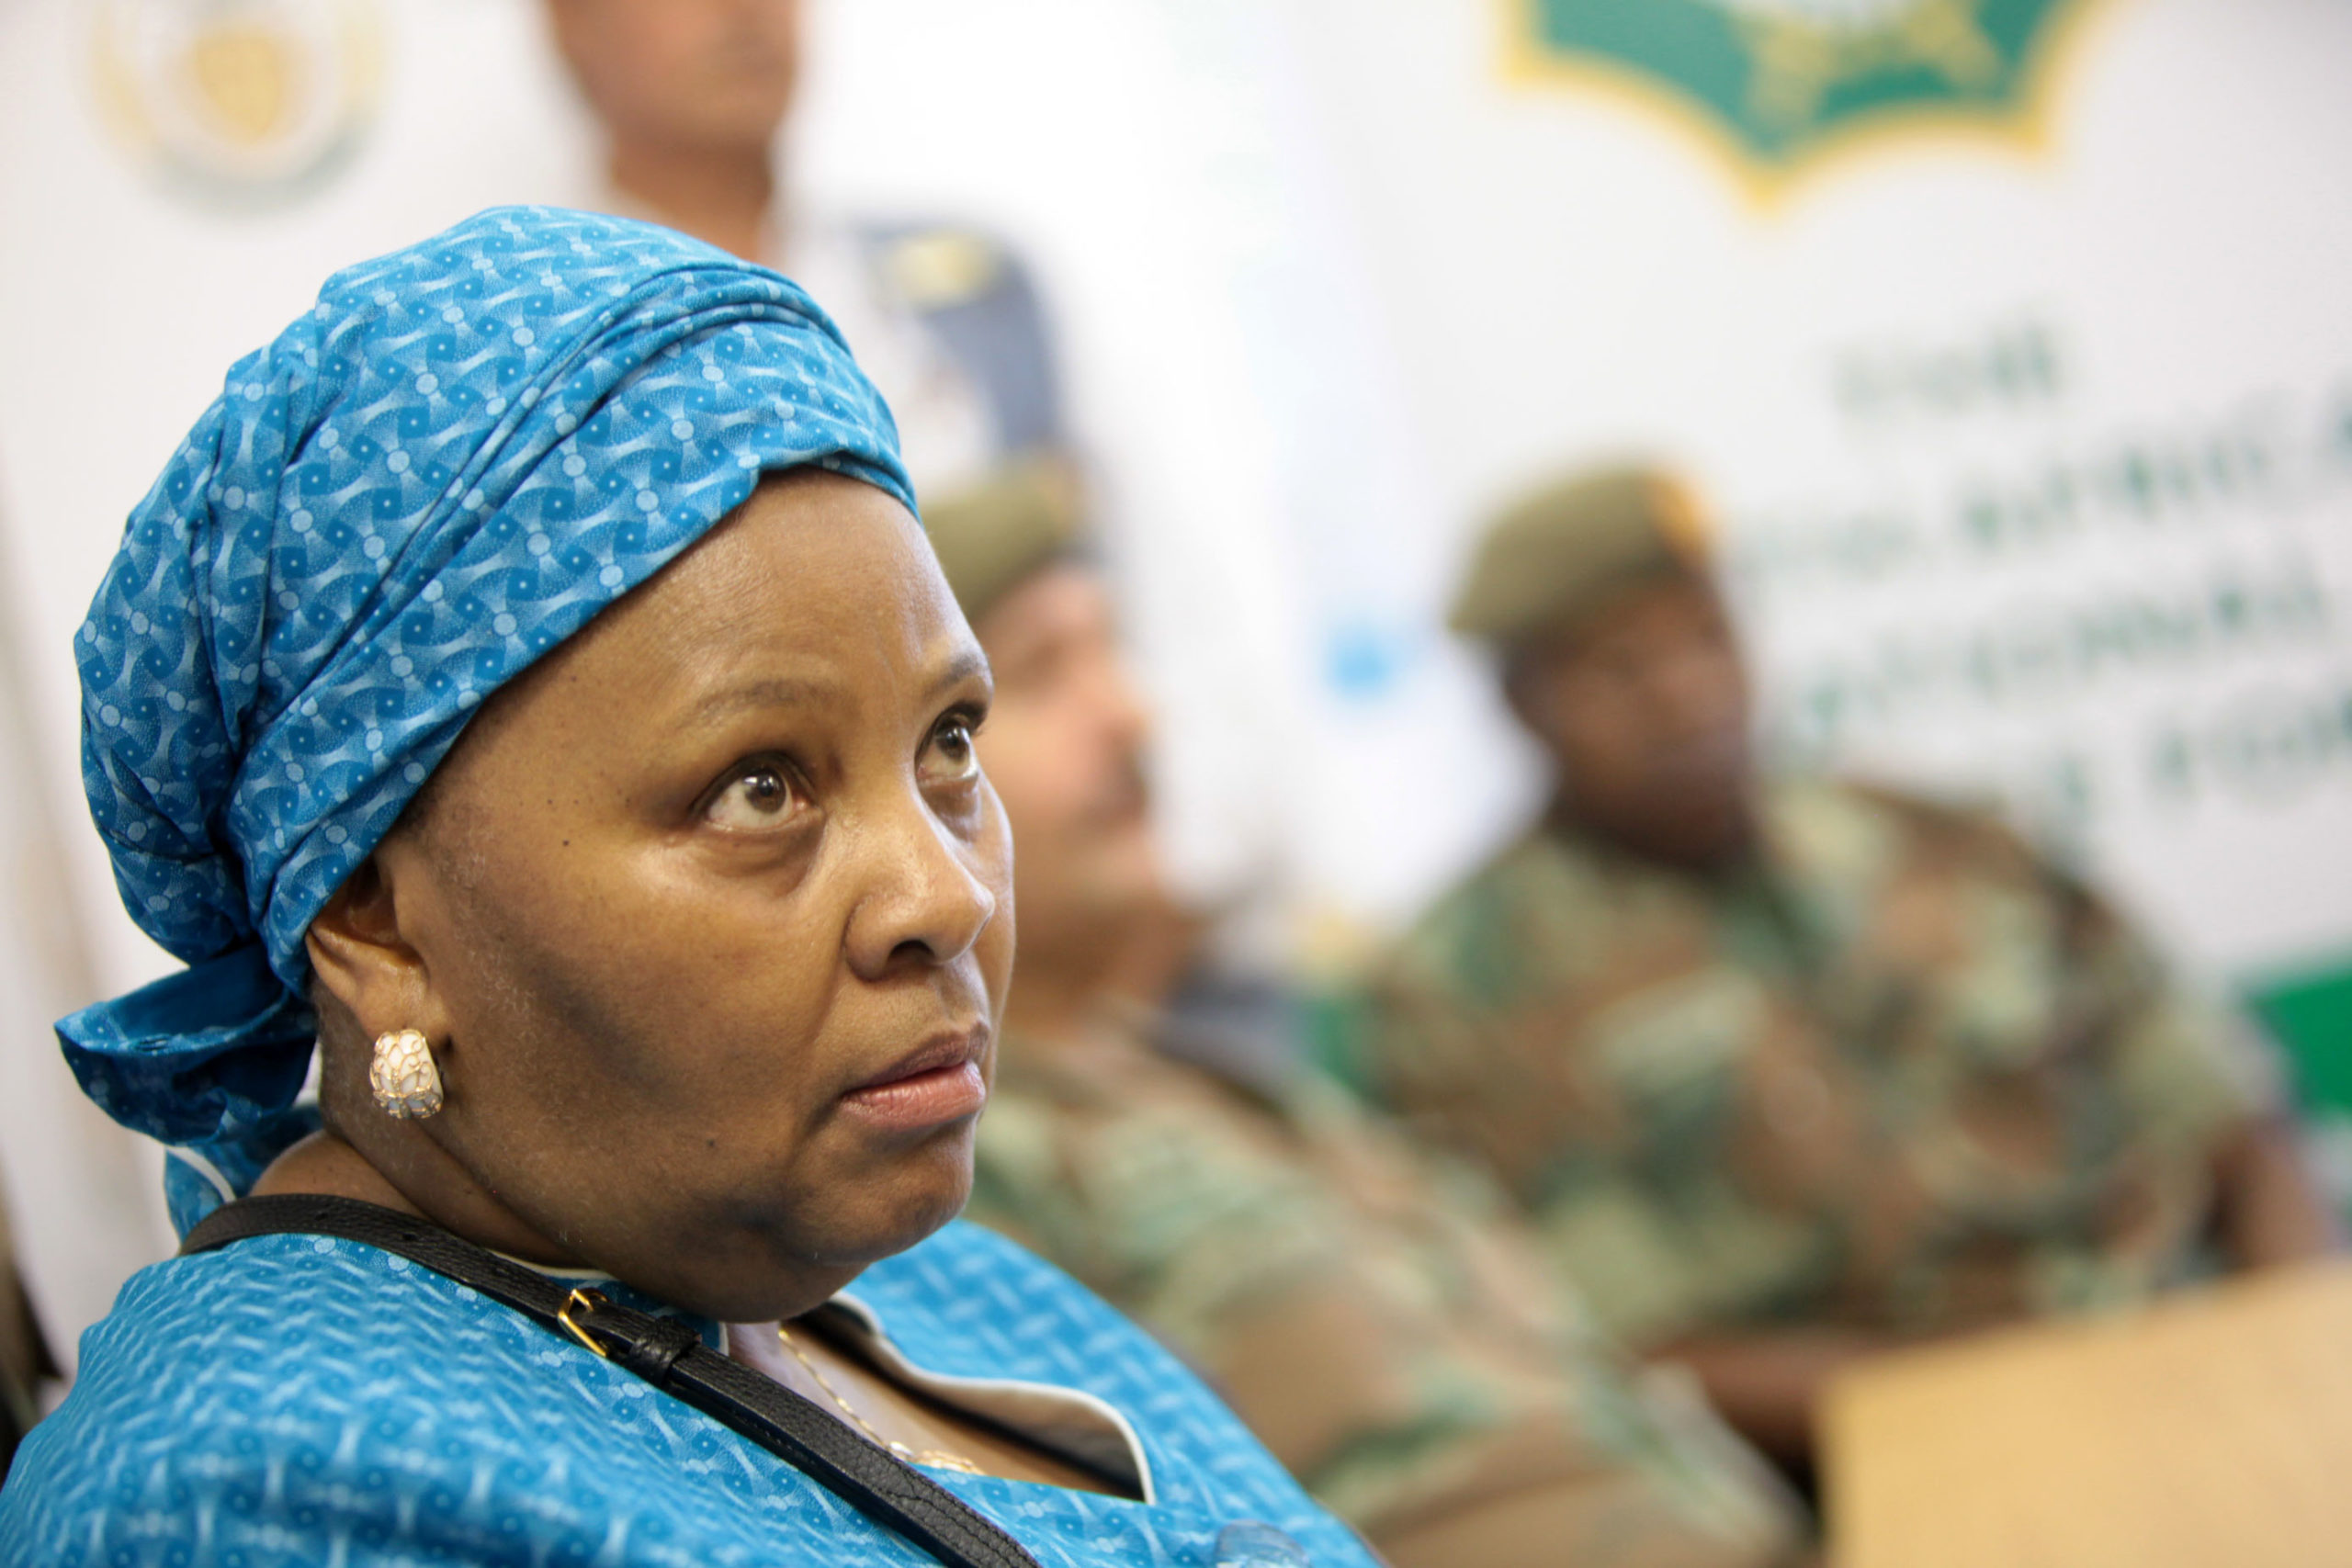 Defence Minister needs to account on R215m spent on unproven Covid-19 drugs